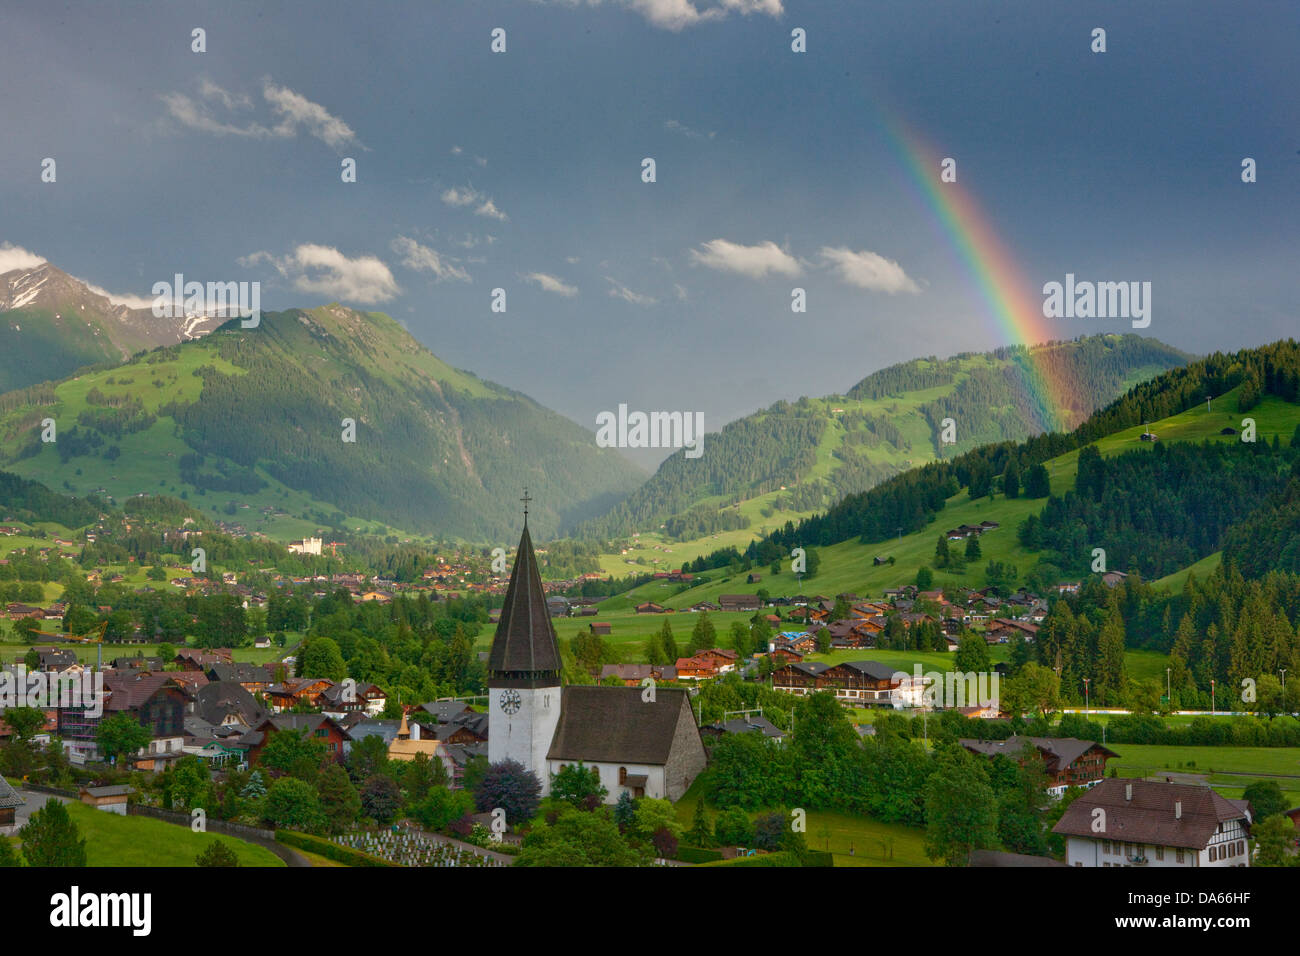 Rainbows, Saanenland, weather, clouds, cloud, canton, Bern, wood, forest, Gstaad, Switzerland, Europe, Bernese Oberland - Stock Image